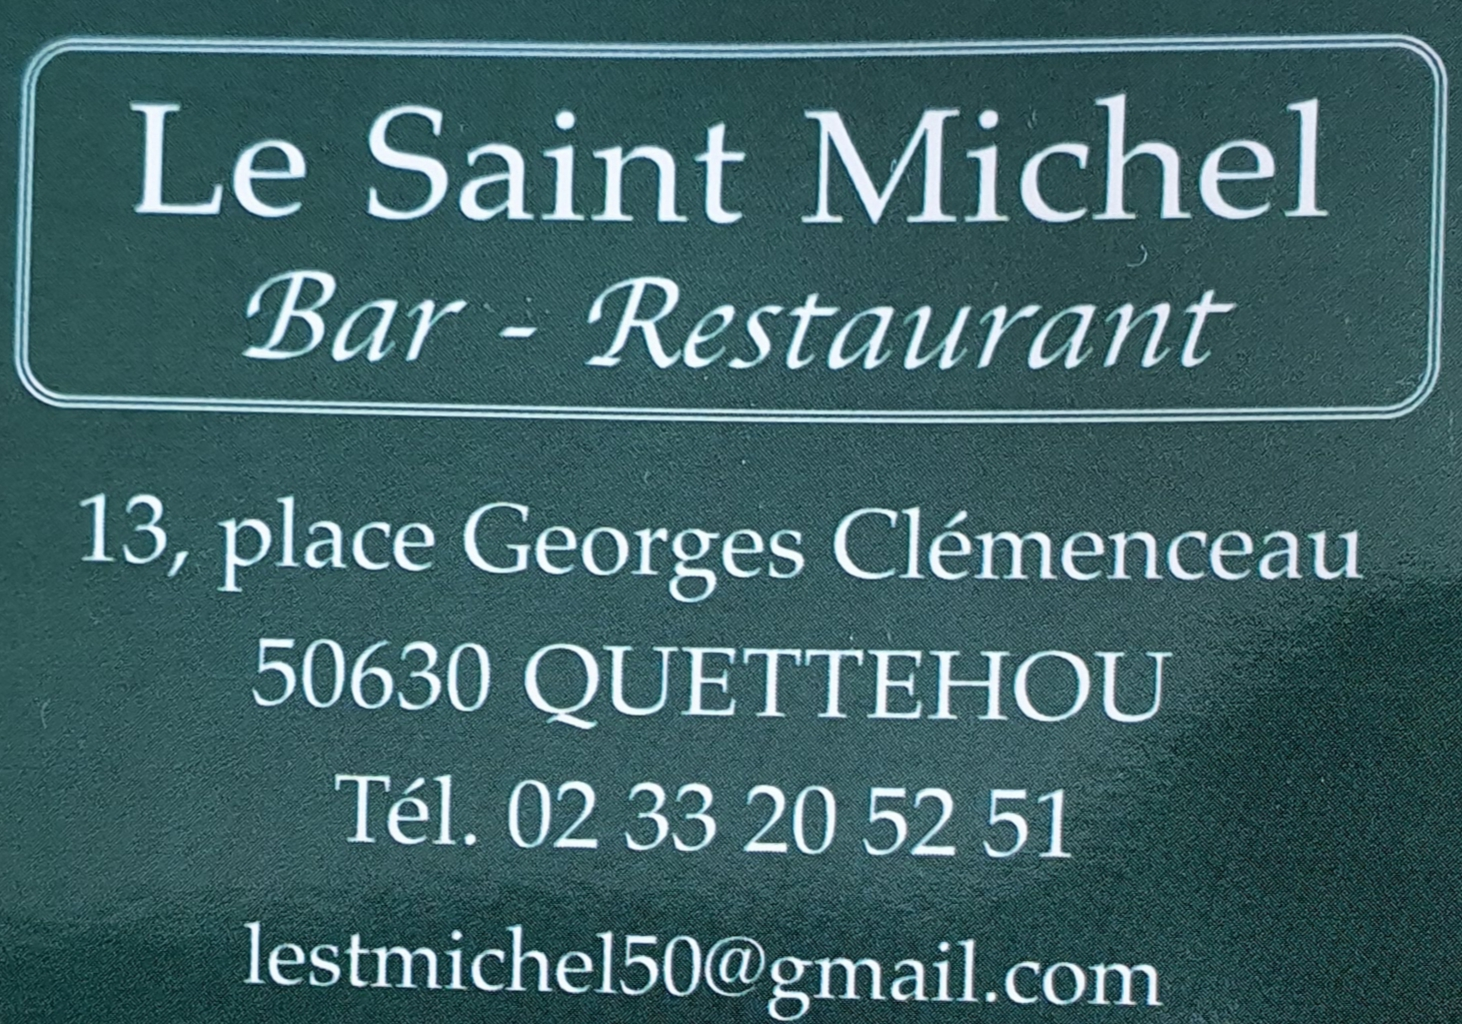 Le Saint Michel - Bar - Restaurant - Quettehou